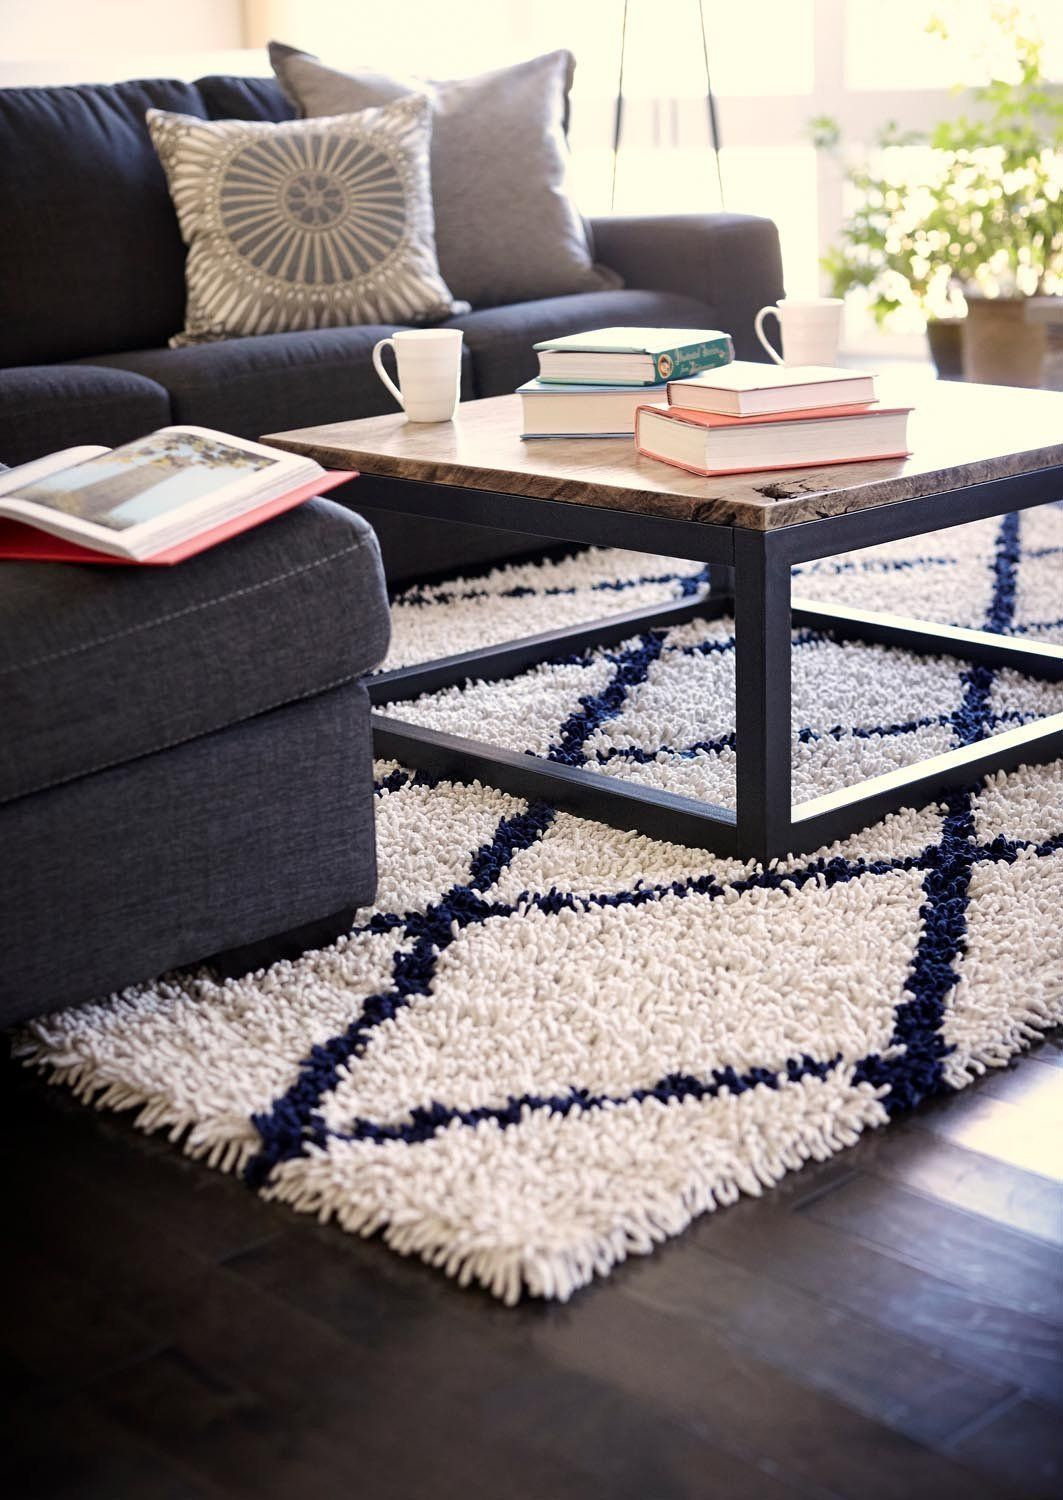 The Amb0658 Area Rug From Anji Mountain Features A 50 Rayon Made From Bamboo And 50 Cotton Pile A Blue And White Rug Rugs In Living Room Navy Rug Living Room